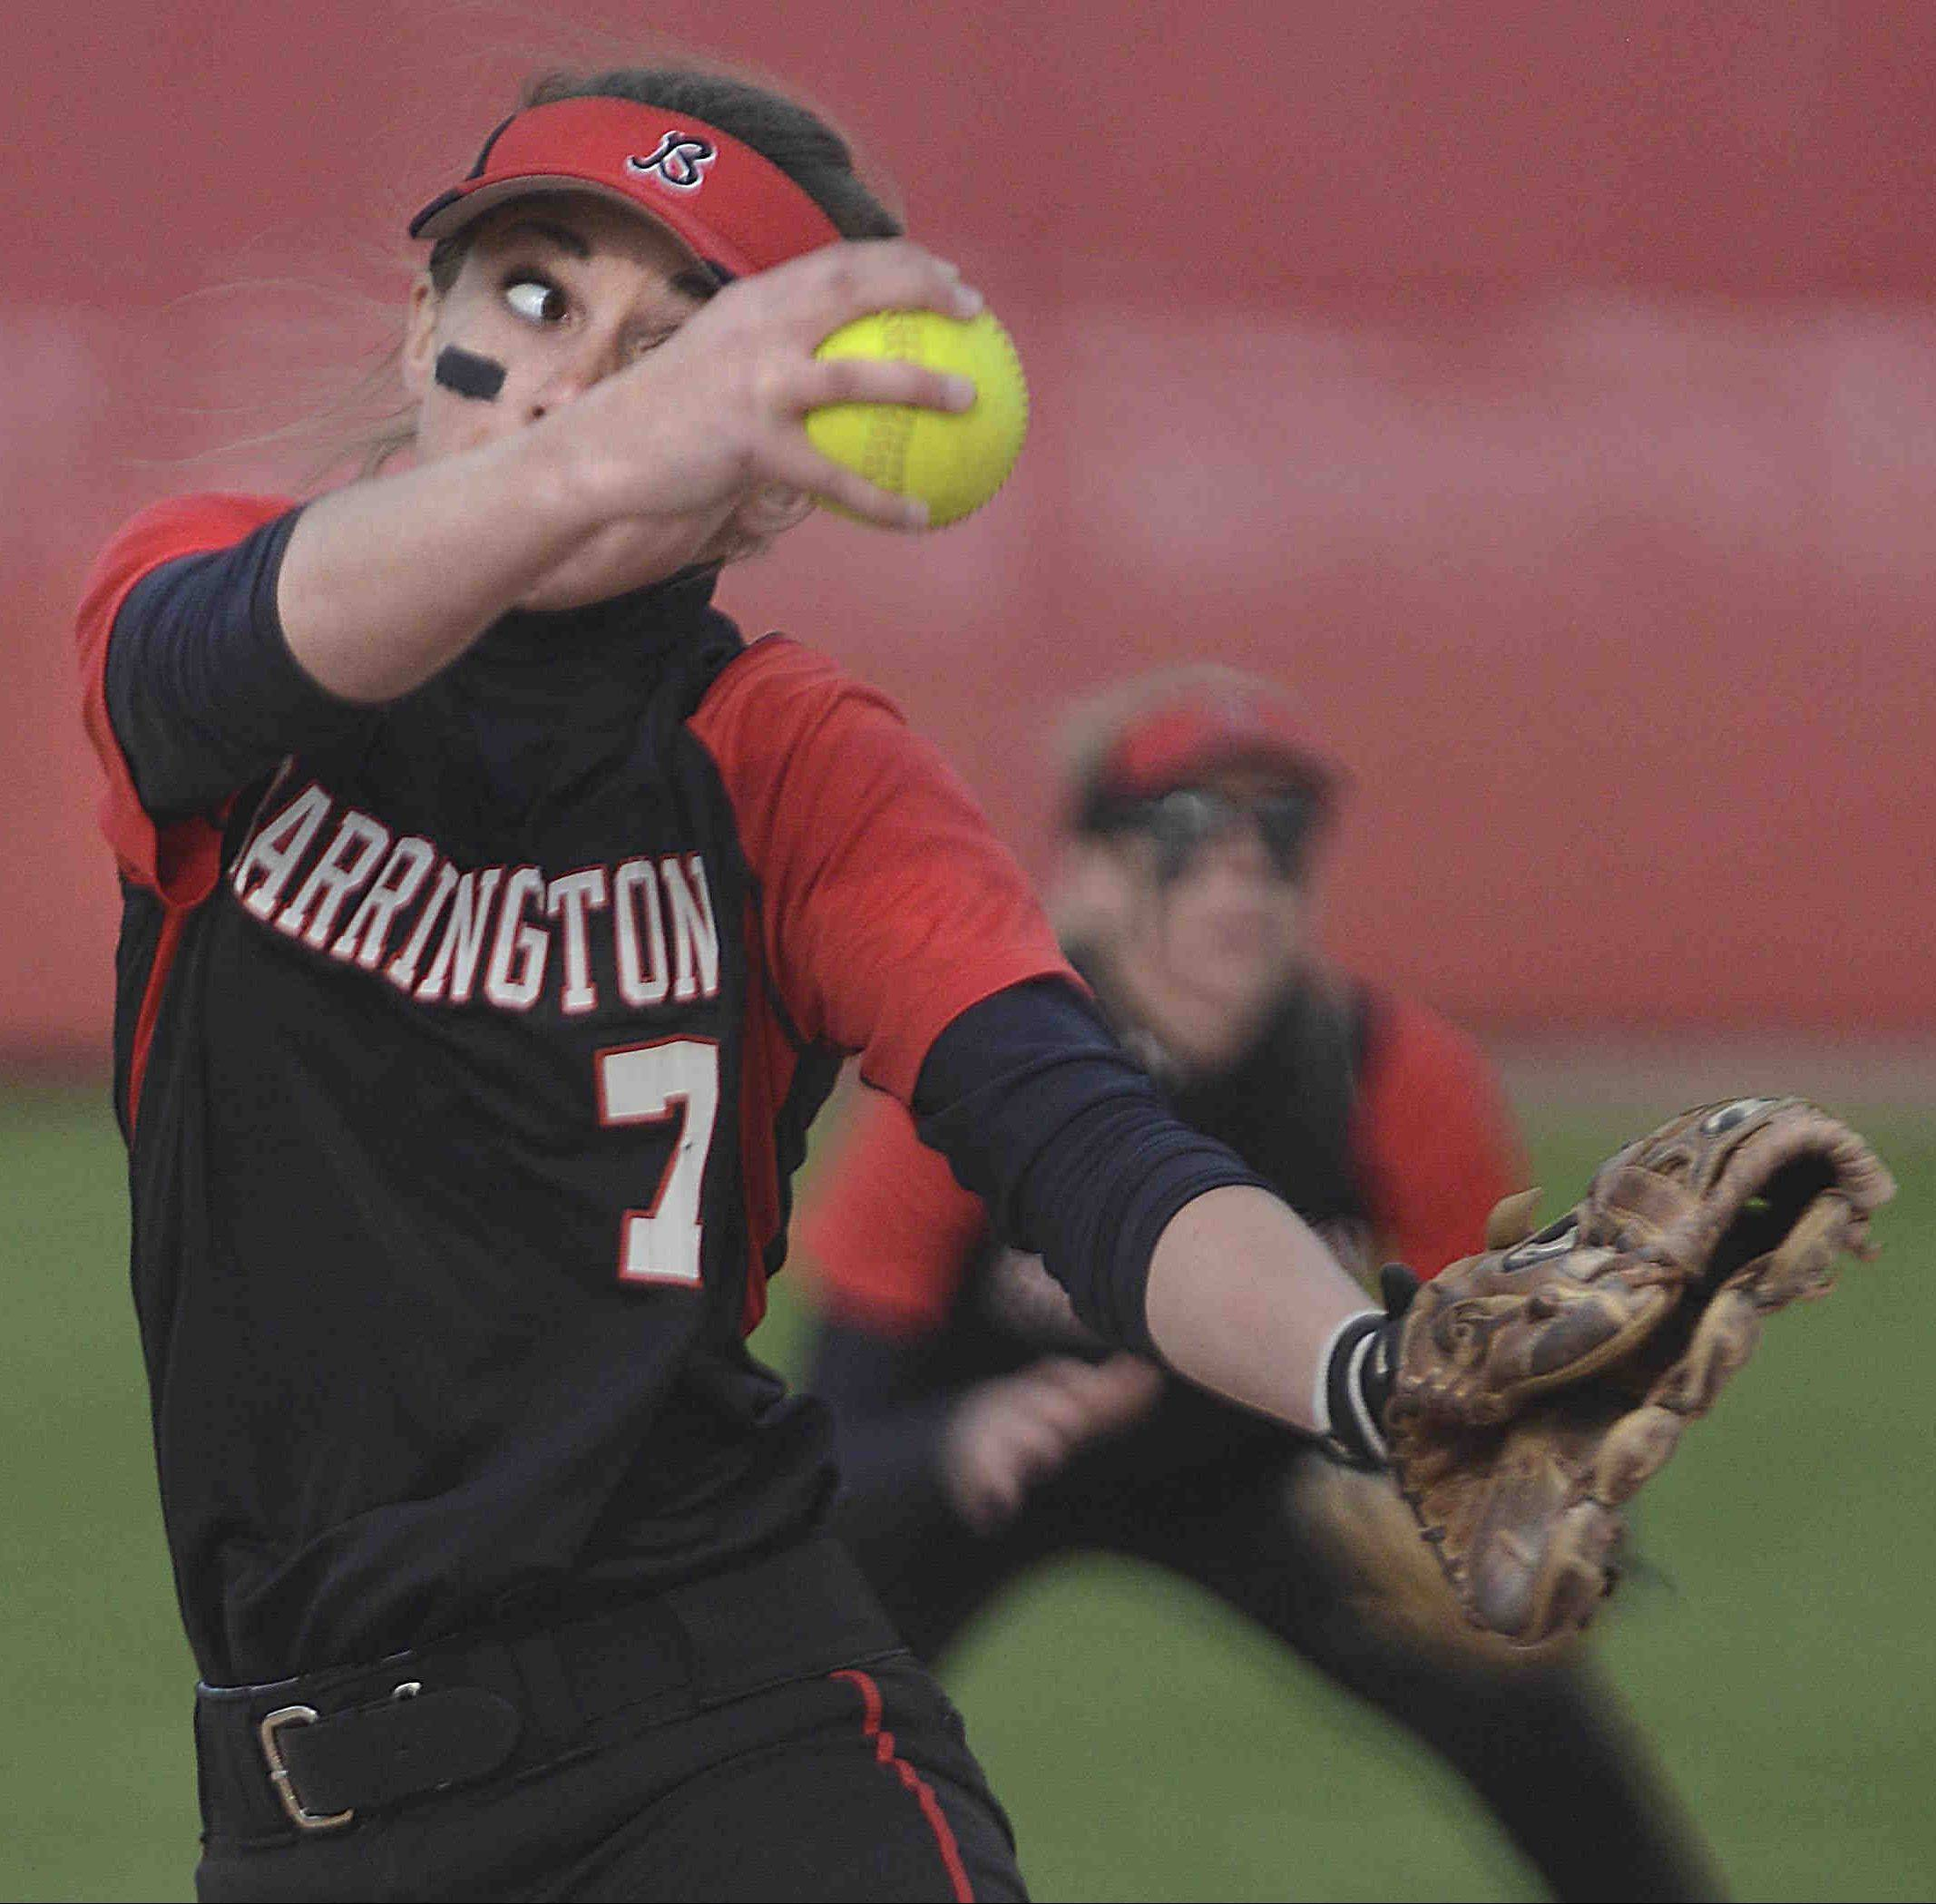 Barrington pitcher Keenan Dolezal delivers against Fremd on Monday.